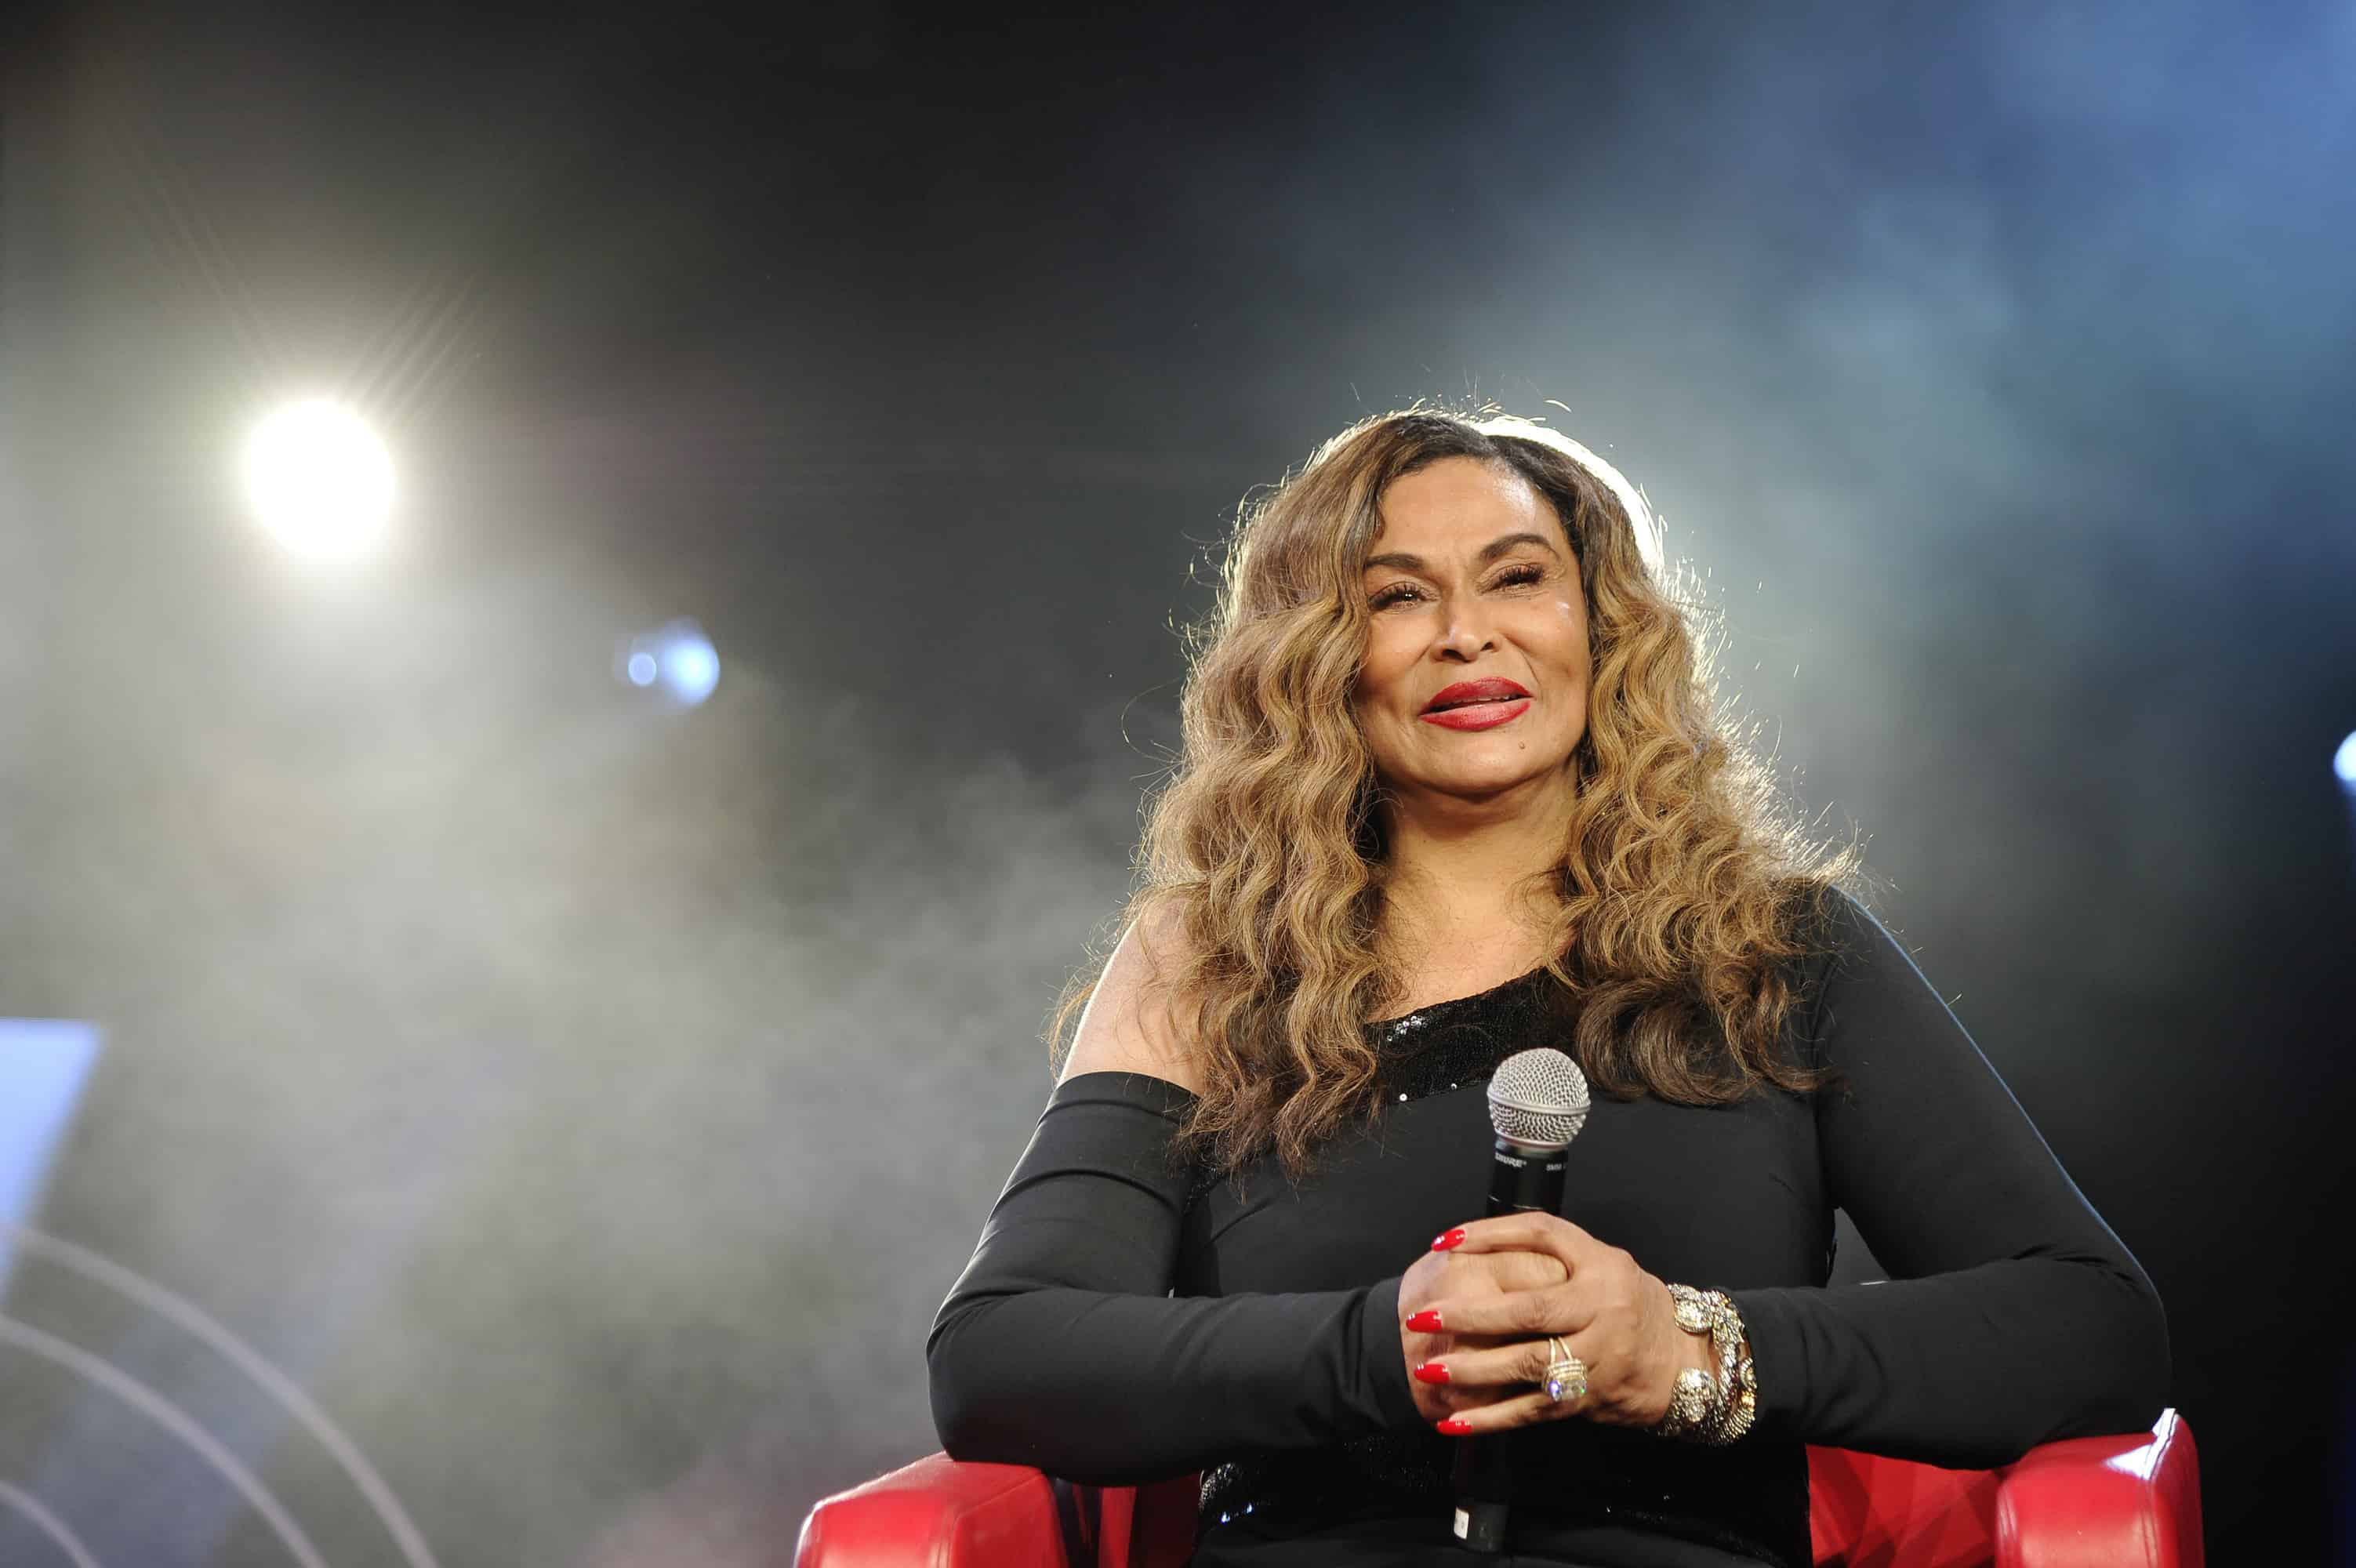 Tina Lawson took to Instagram to show off her dance moves to the Savage Remix which features her eldest daughter Beyoncé.